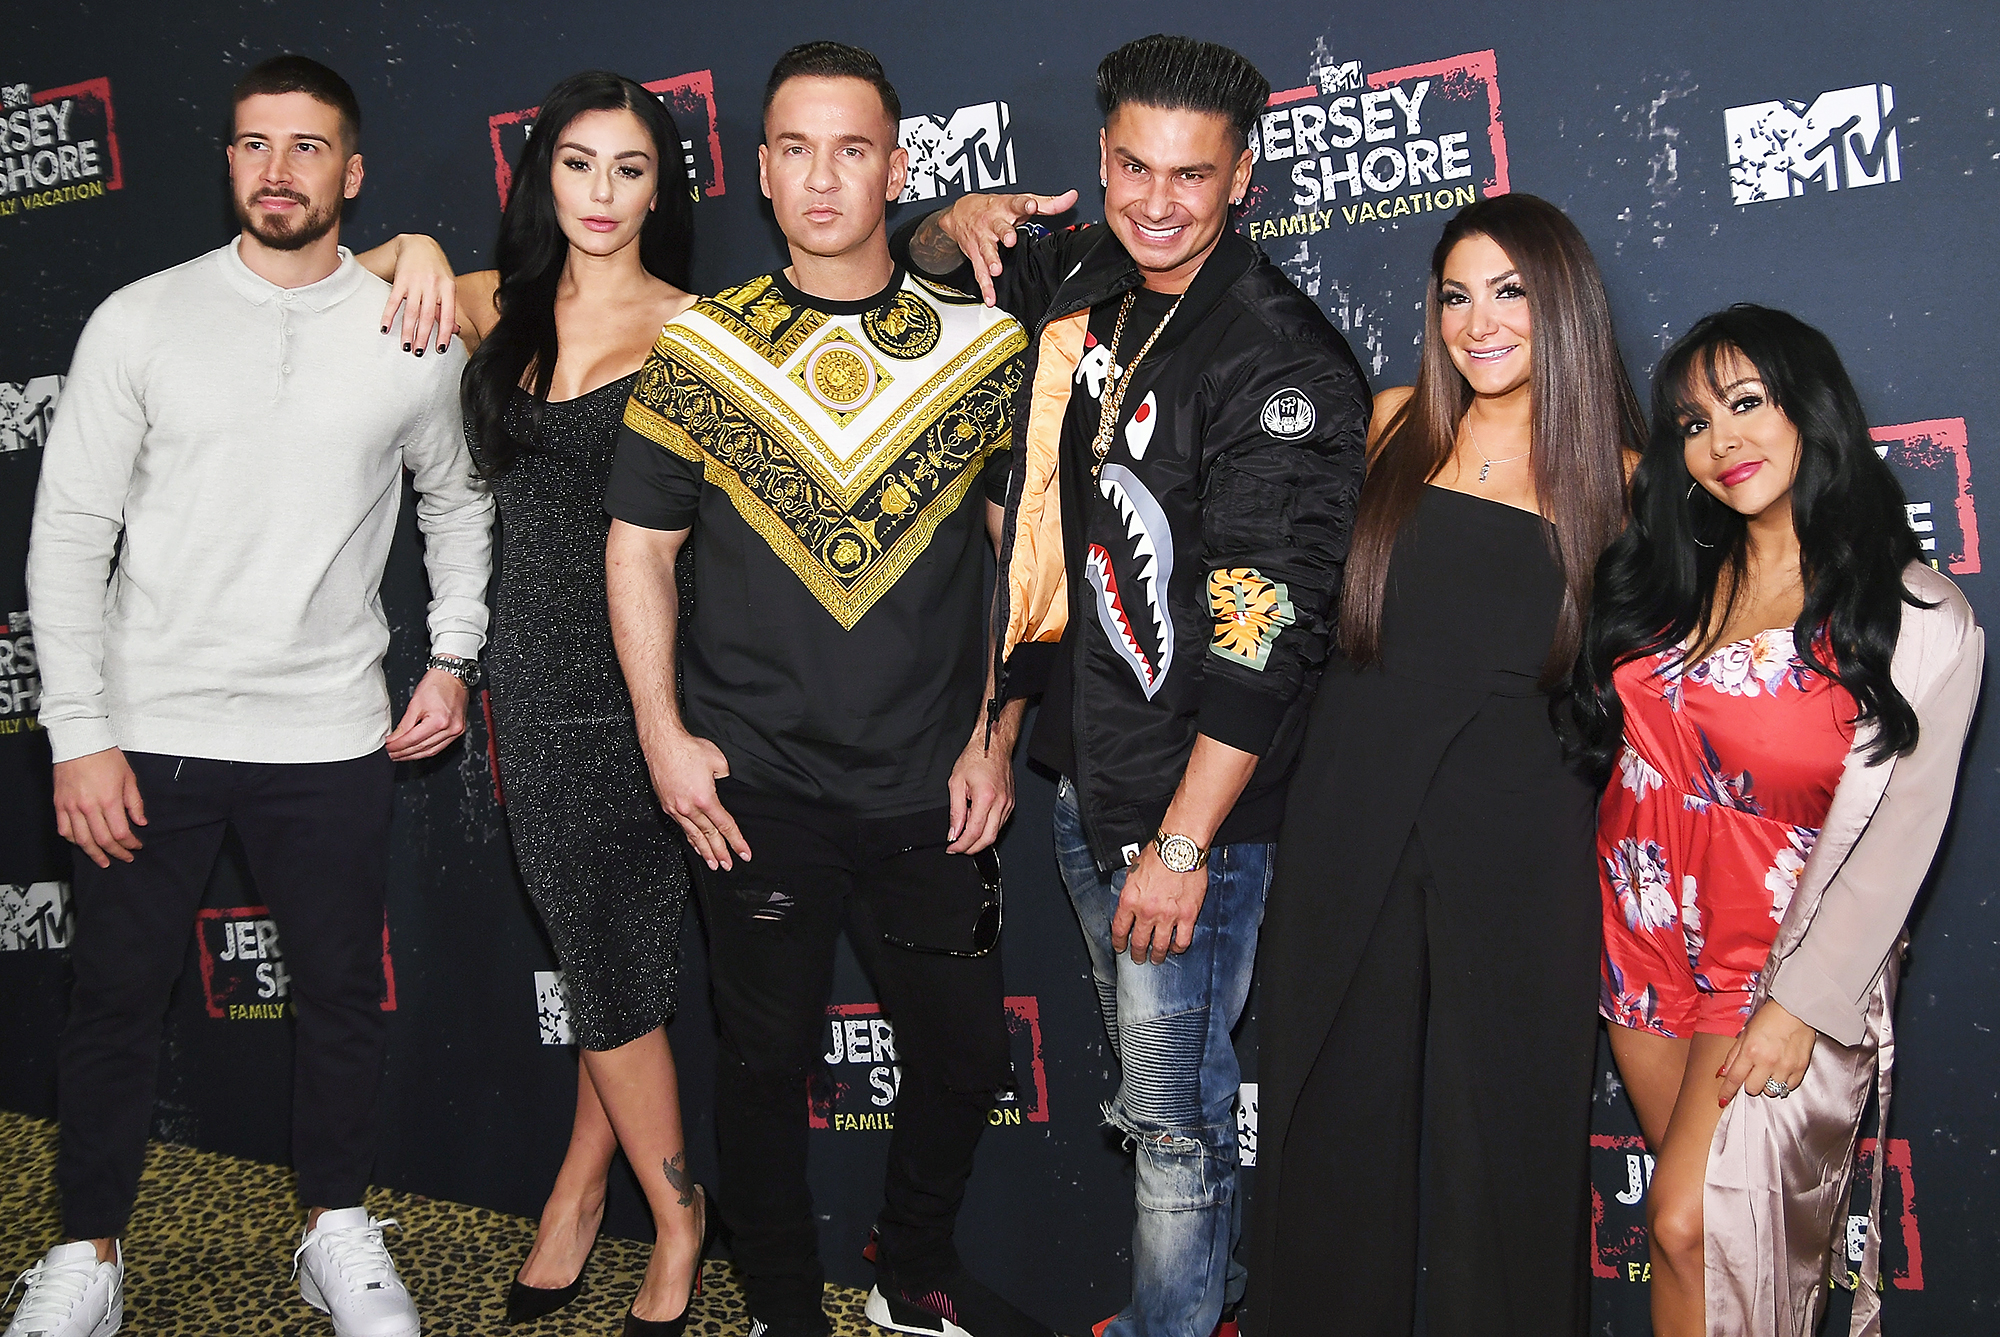 Jersey Shore Cast Shares Advice for New Dad Ronnie Ortiz Magro